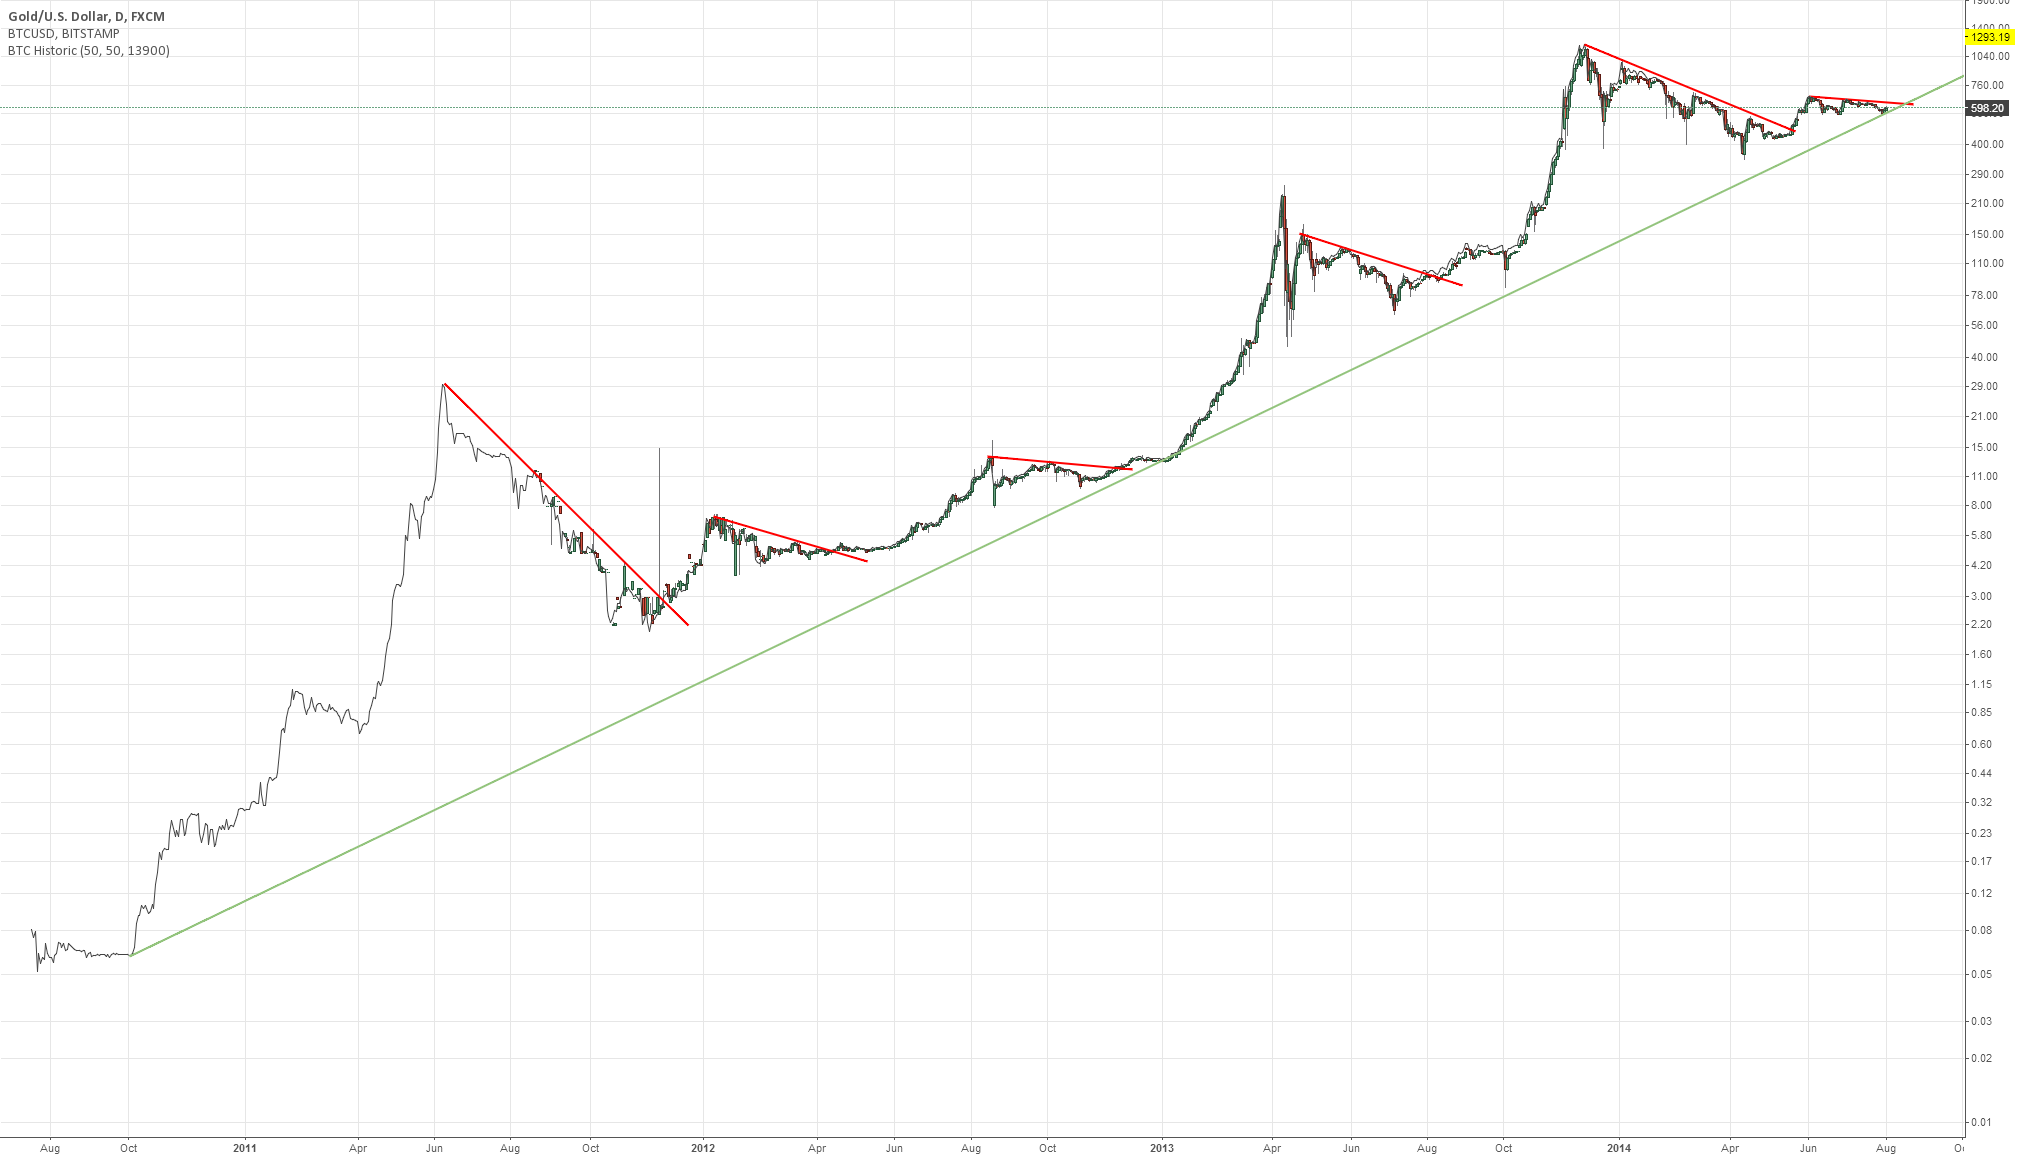 Exponential trend line